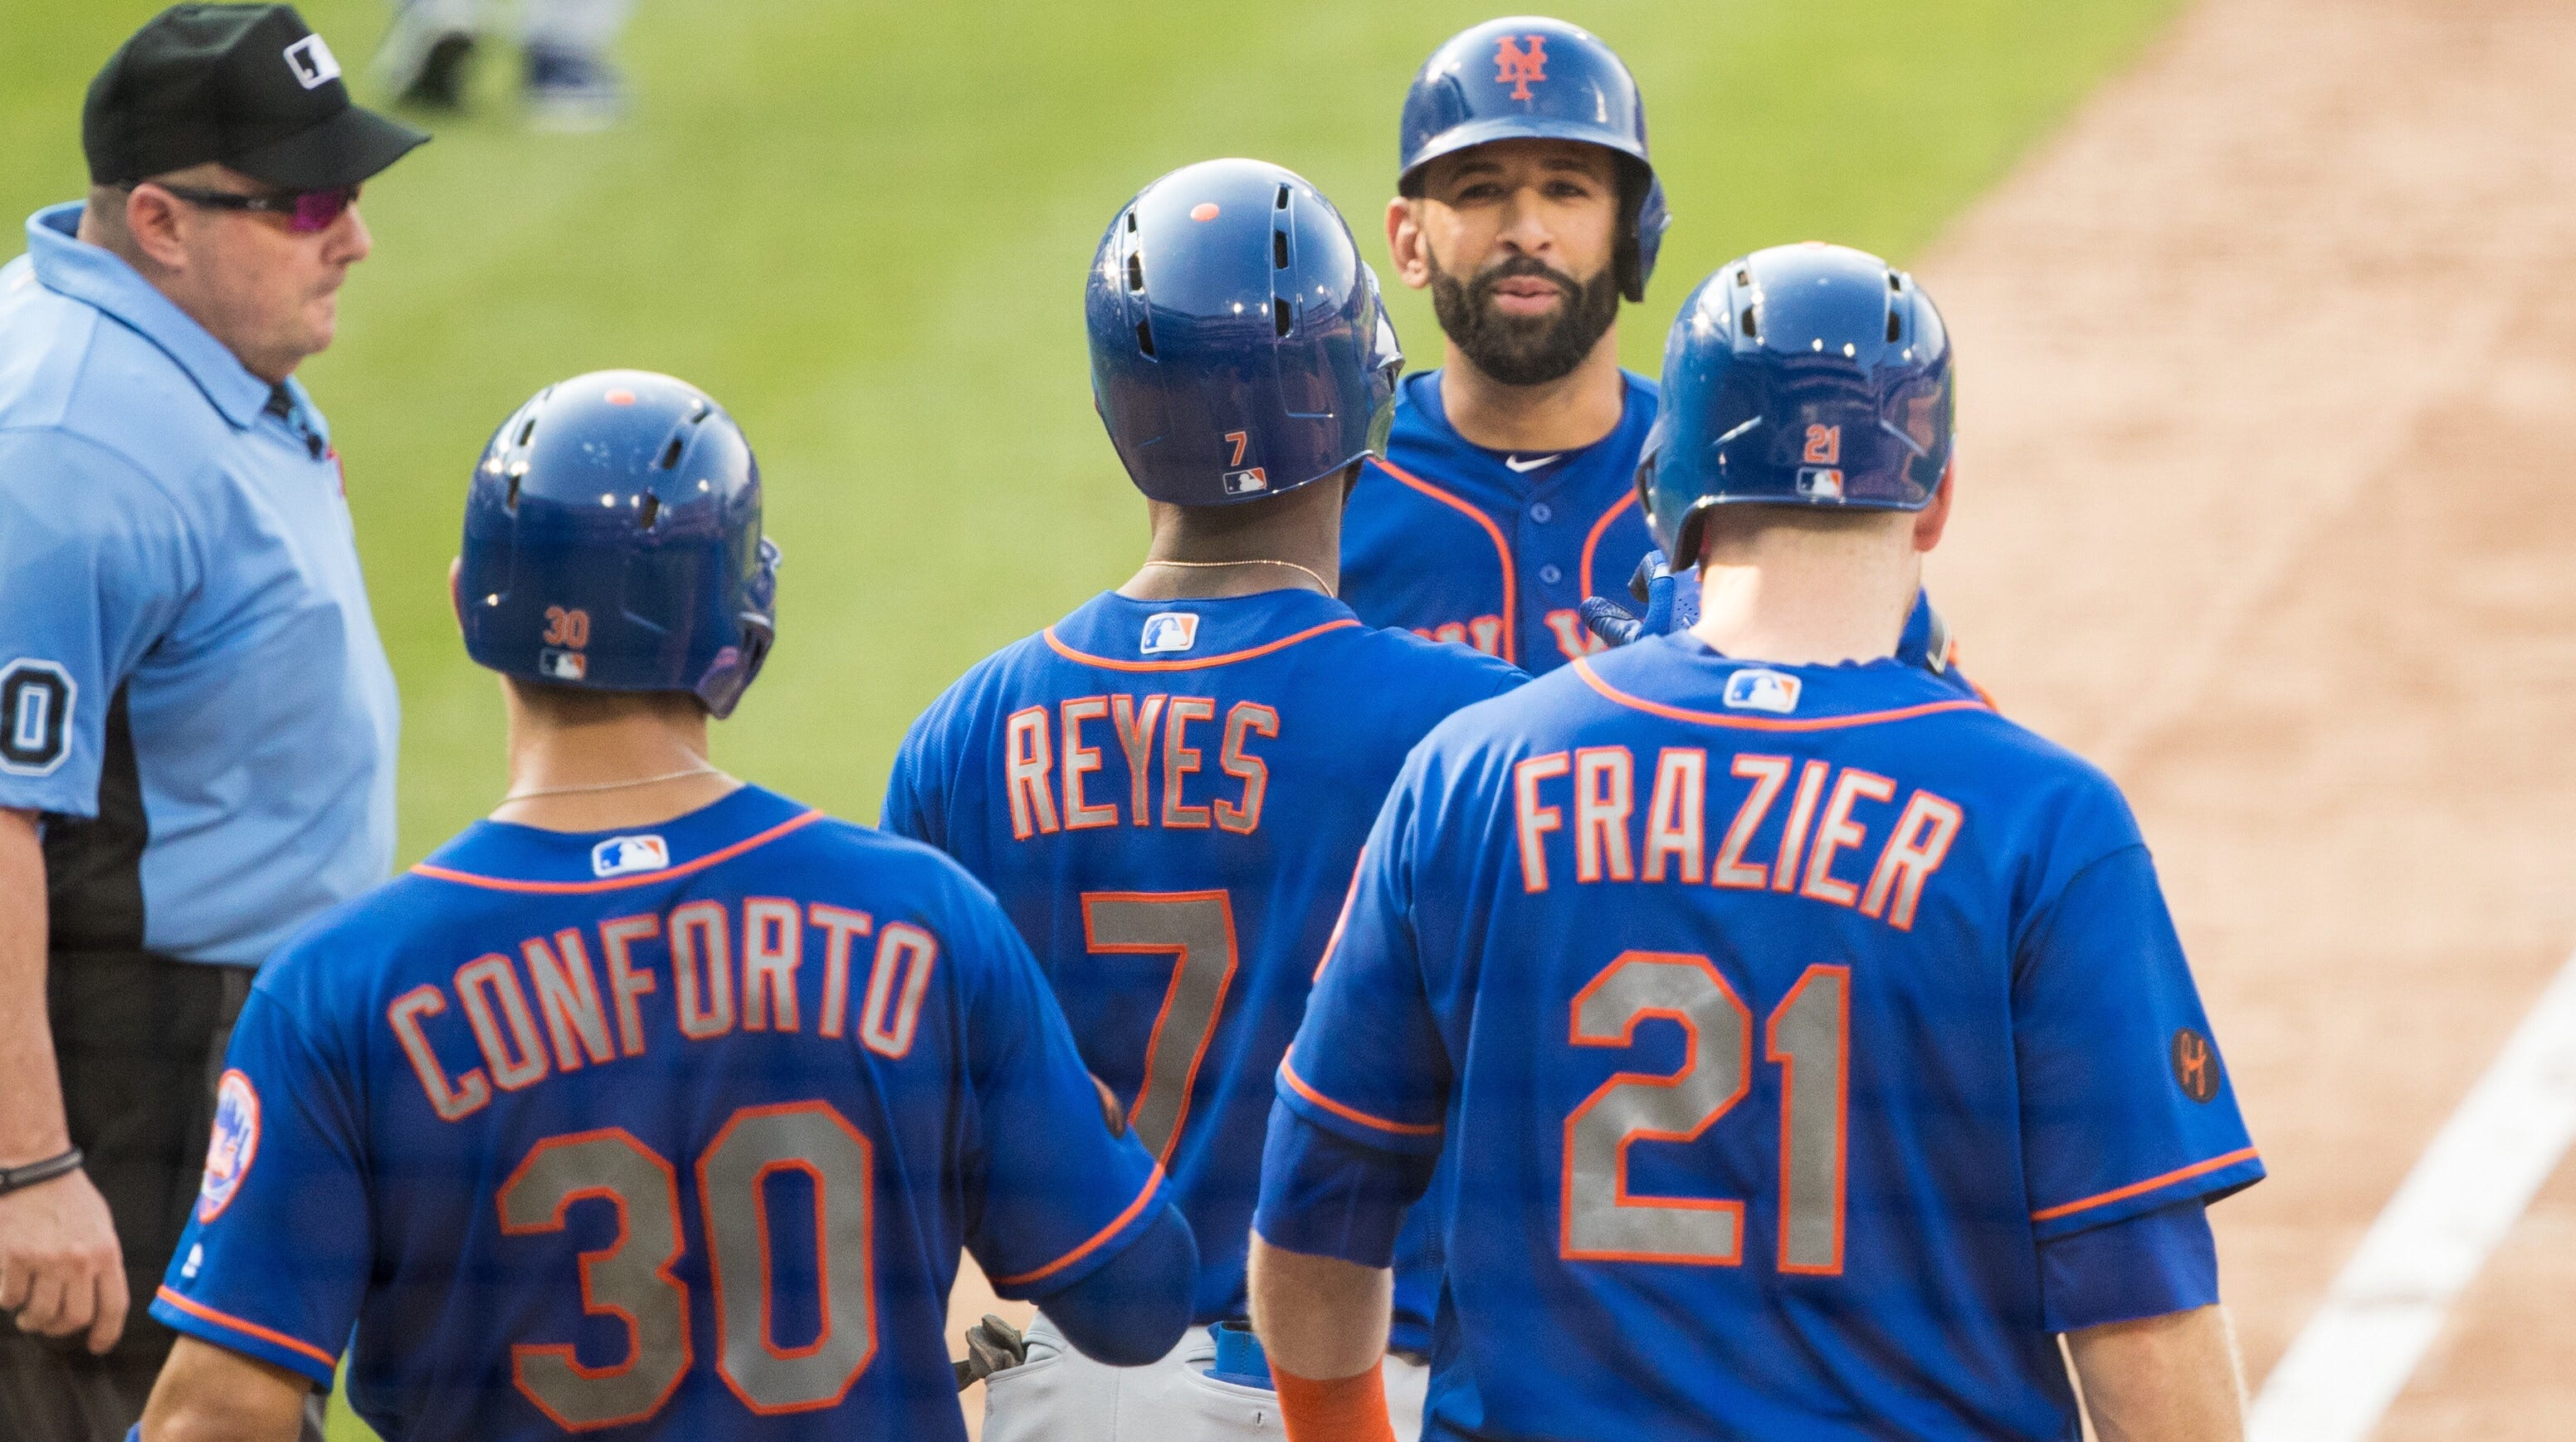 The Mets have scored at least 16 runs in back-to-back games for the first time after beating the Phillies, 24-4. They lost 9-6 in the nightcap.